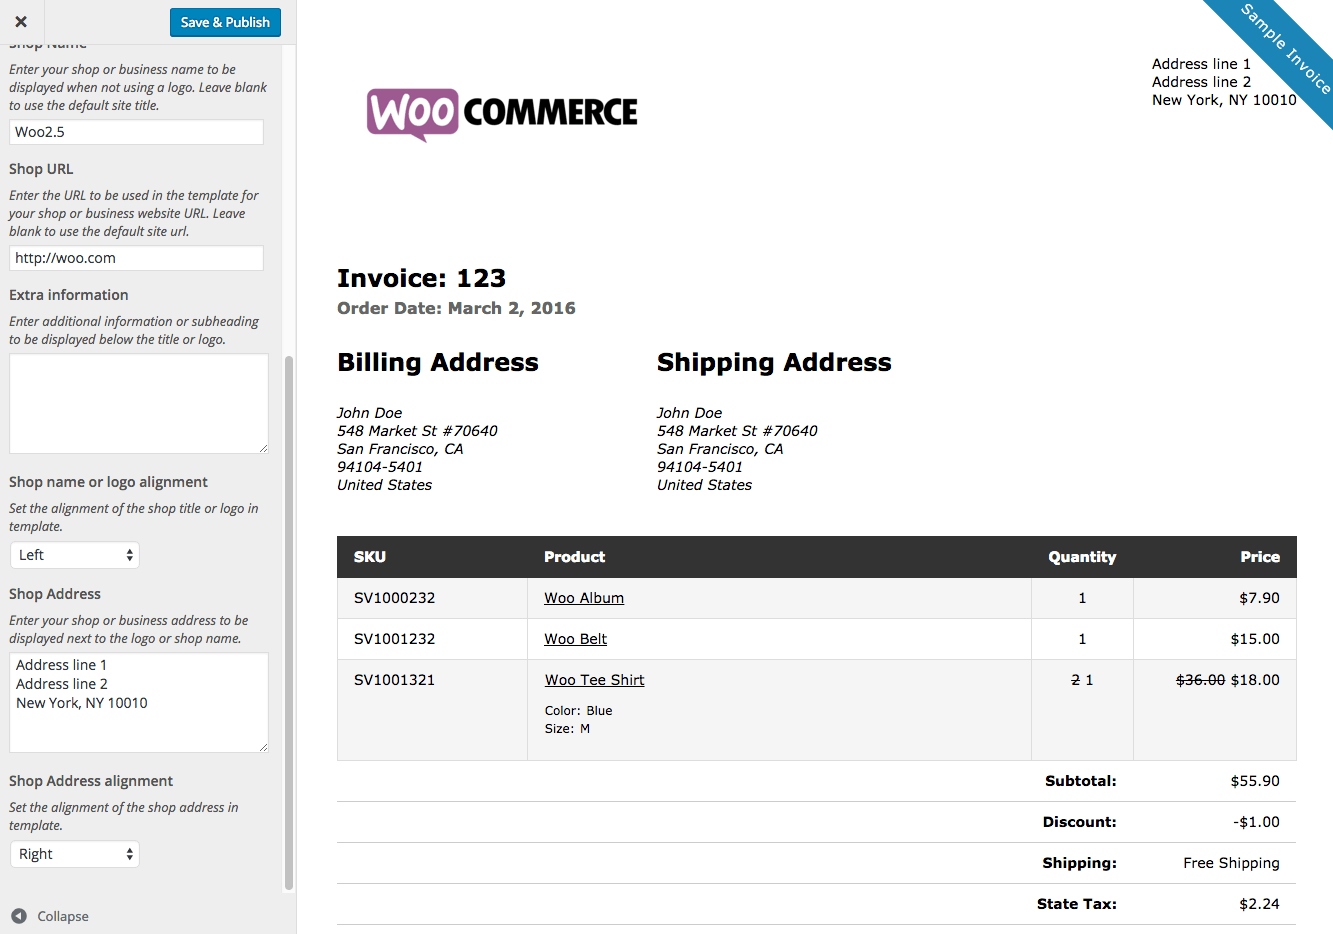 Hius  Prepossessing Print Invoices Amp Packing Lists  Woocommerce With Remarkable Woocommerce Print Invoices  Packing Lists Customizer With Astounding Open Invoice Adp Login Also Submit Invoice In Addition Zip Cash Invoice And Brz Invoice Price As Well As Invoice Template Word  Additionally Quickbooks Invoice Sample From Woocommercecom With Hius  Remarkable Print Invoices Amp Packing Lists  Woocommerce With Astounding Woocommerce Print Invoices  Packing Lists Customizer And Prepossessing Open Invoice Adp Login Also Submit Invoice In Addition Zip Cash Invoice From Woocommercecom